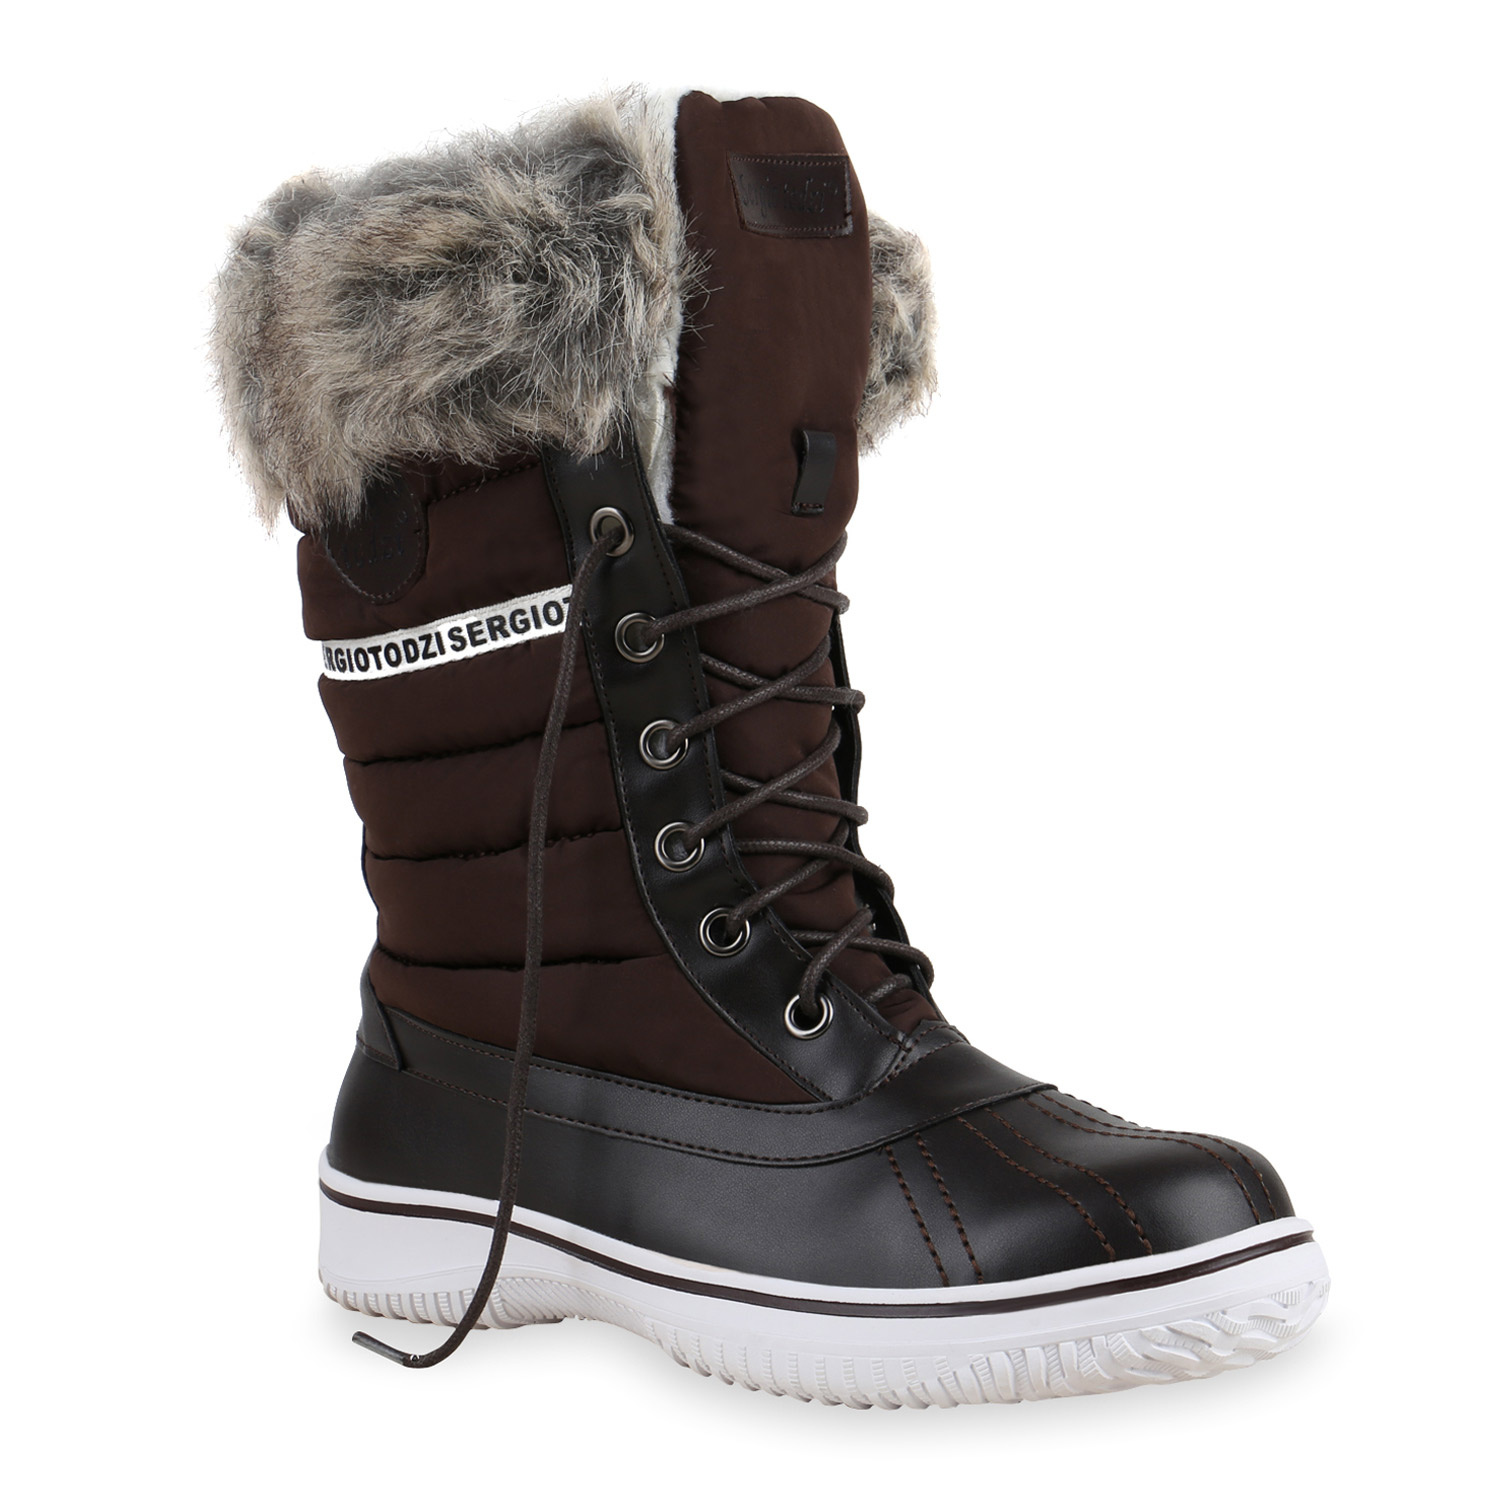 warm gef tterte damen stiefel winterstiefel snow boots schuhe 814080 trendy neu ebay. Black Bedroom Furniture Sets. Home Design Ideas